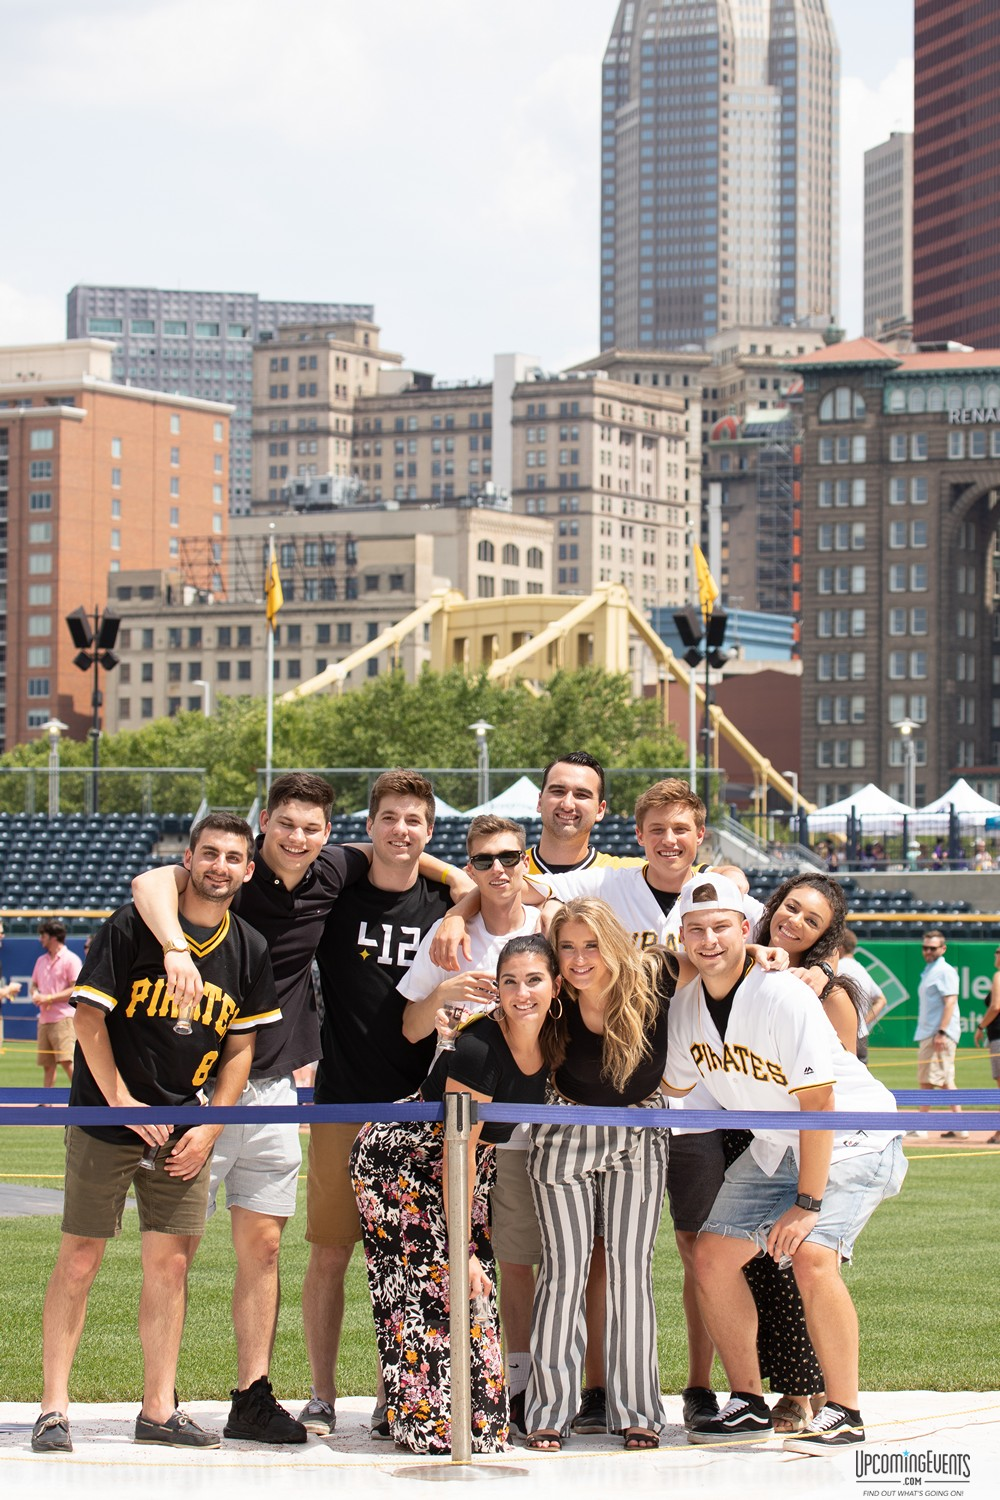 View photos for Pittsburgh All Star Festival 2019 - Gallery 3 (Session 1)